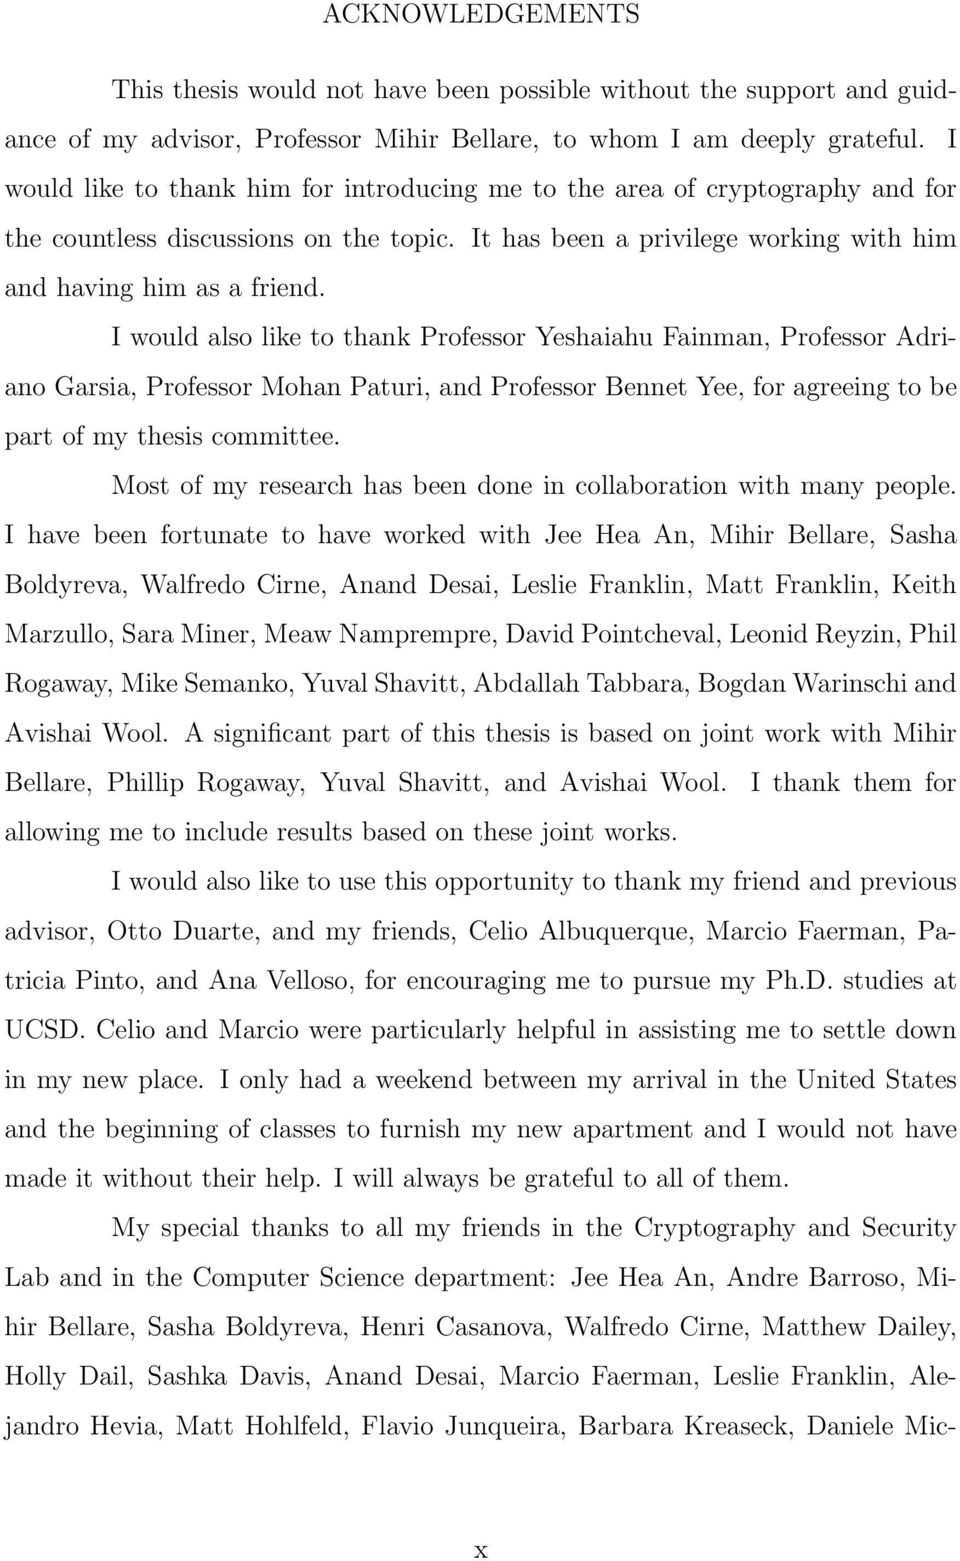 I would also like to thank Professor Yeshaiahu Fainman, Professor Adriano Garsia, Professor Mohan Paturi, and Professor Bennet Yee, for agreeing to be part of my thesis committee.